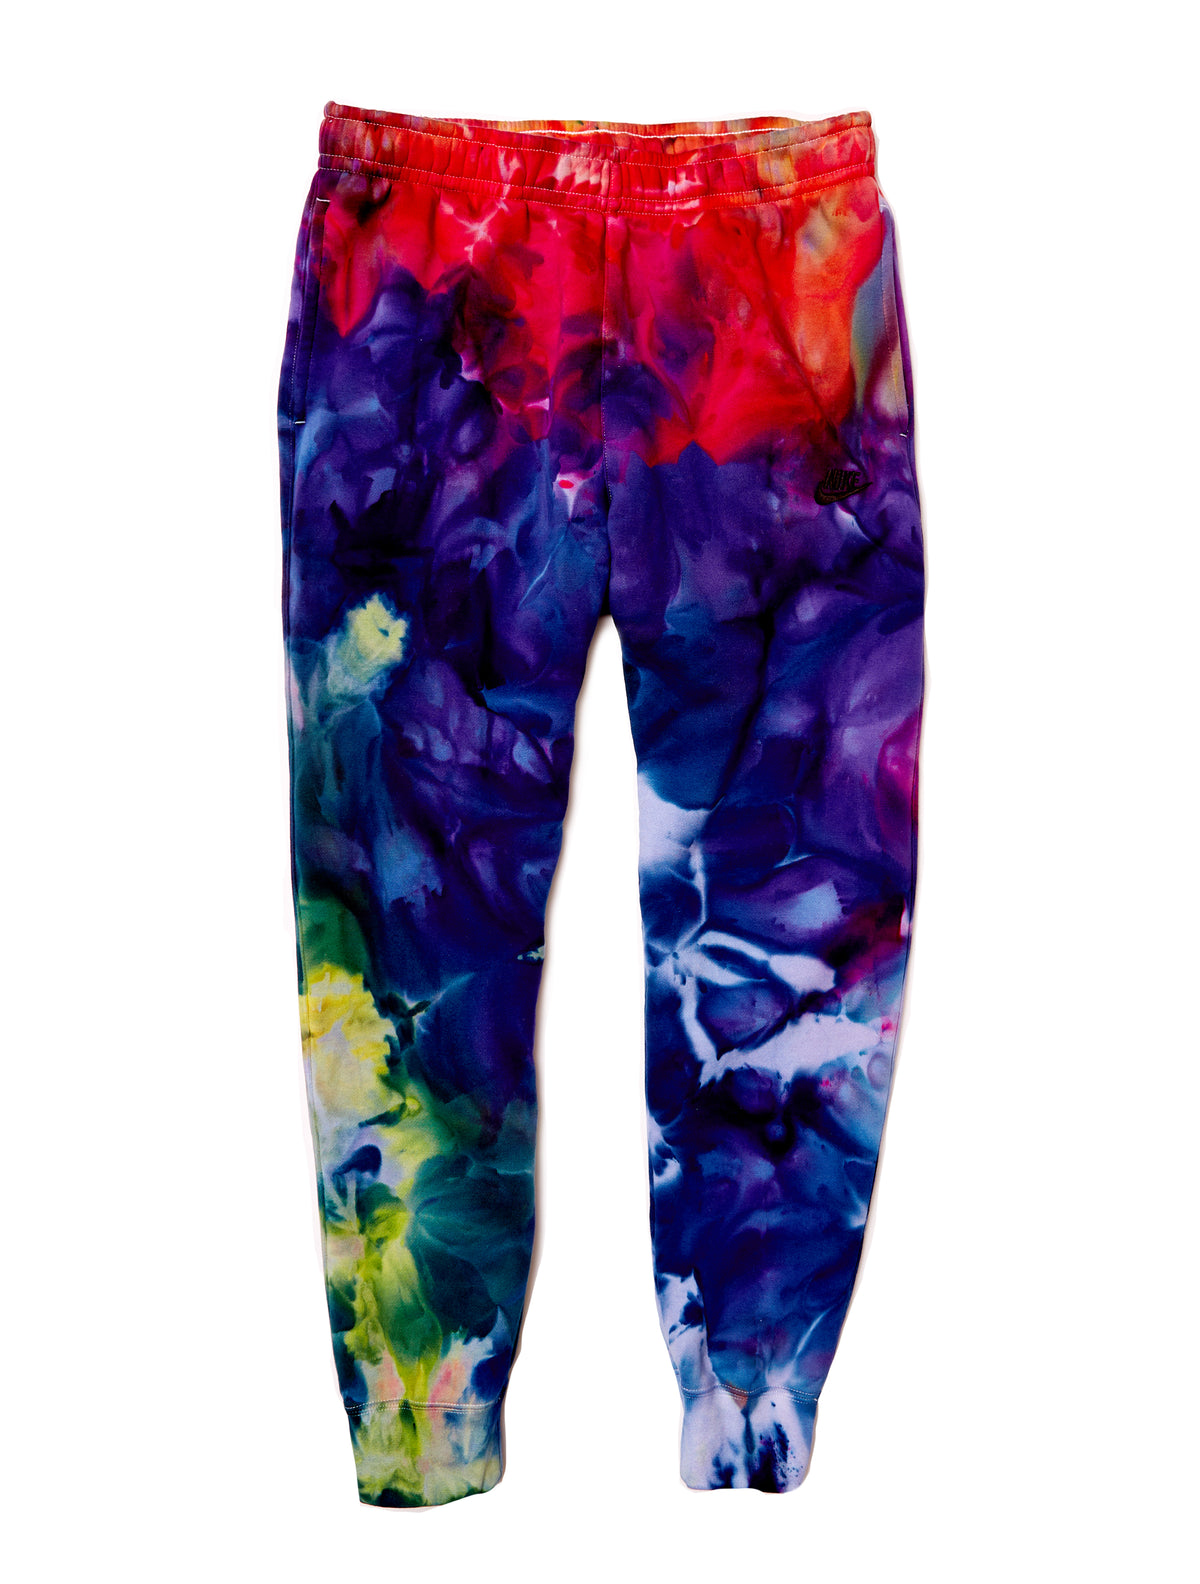 Nike Joggers in Sublime - riverside tool & dye